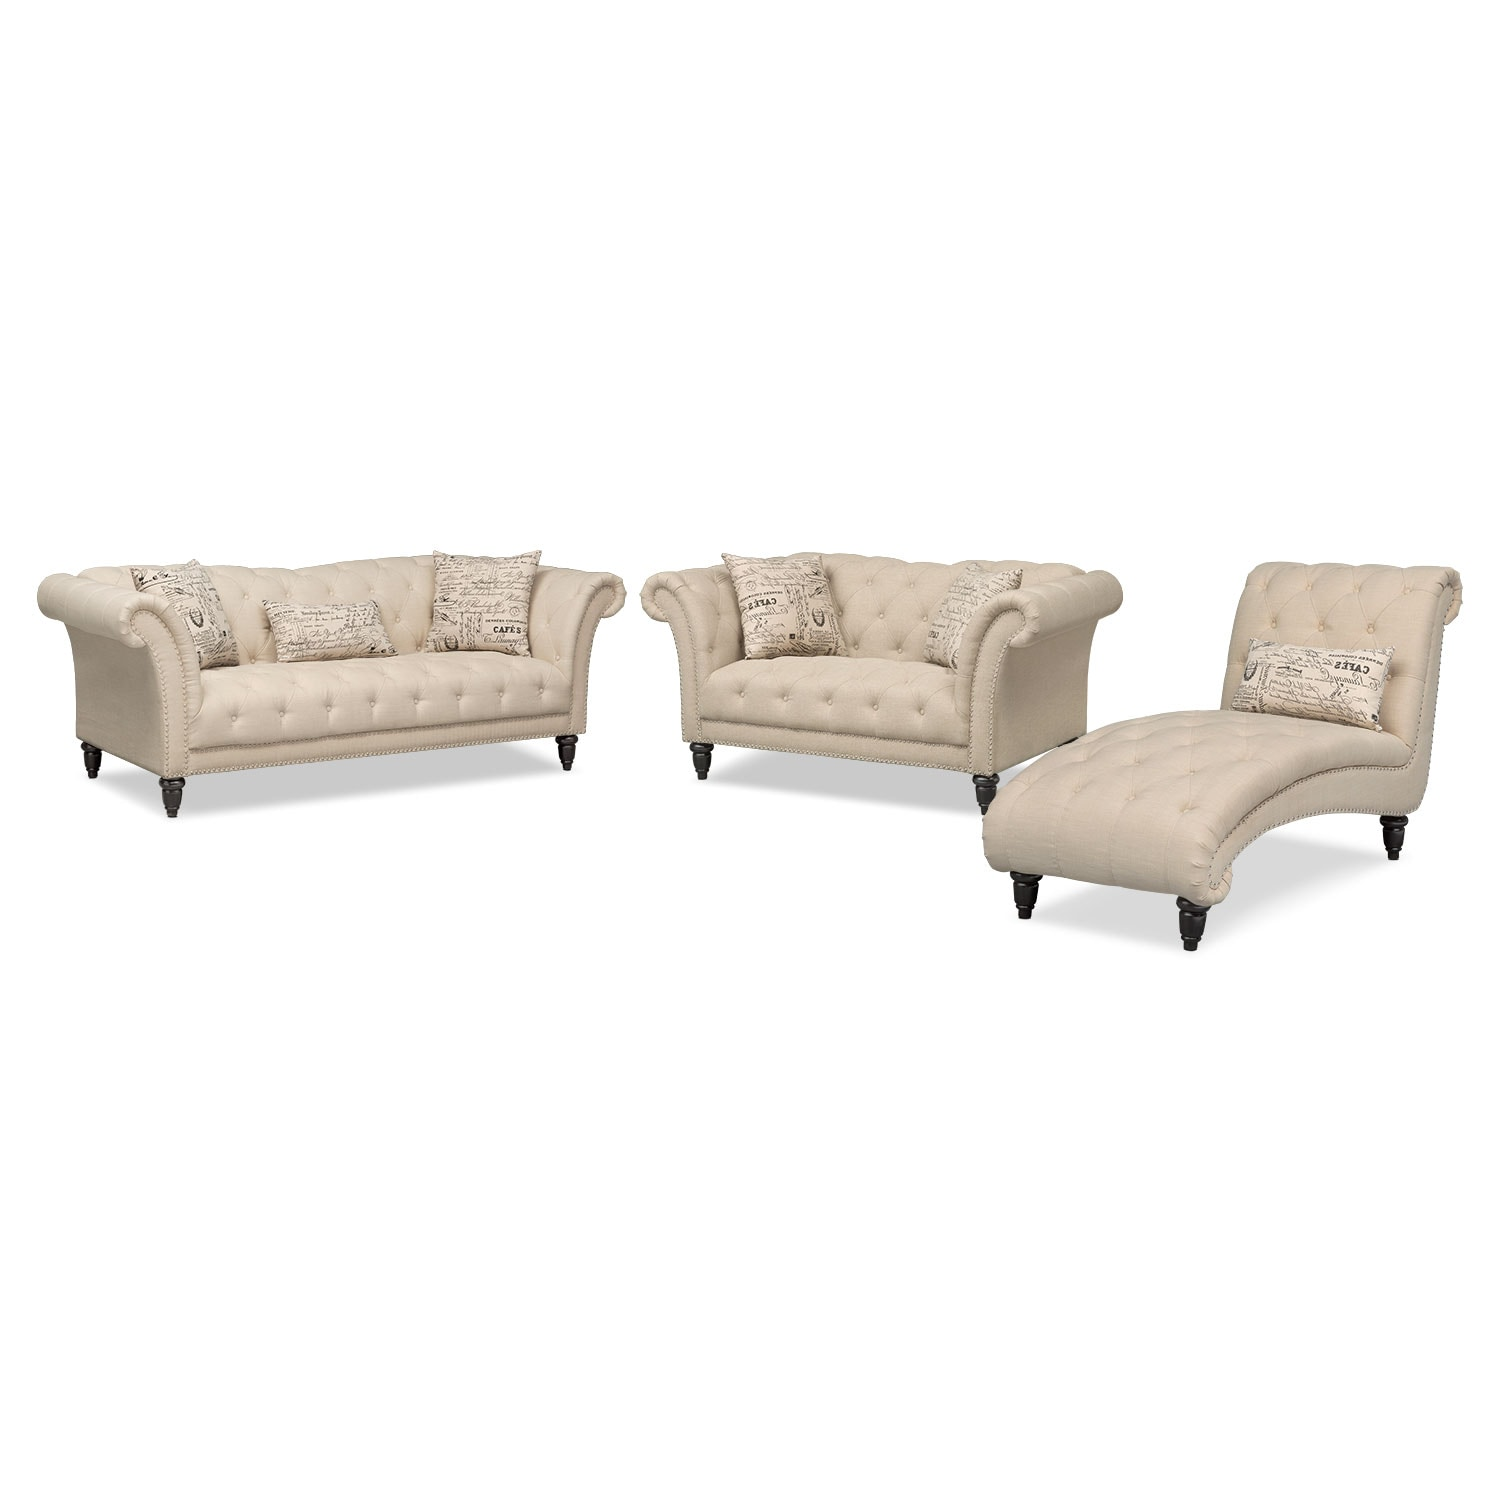 Marisol Sofa Loveseat And Chaise Set Beige Value City Furniture